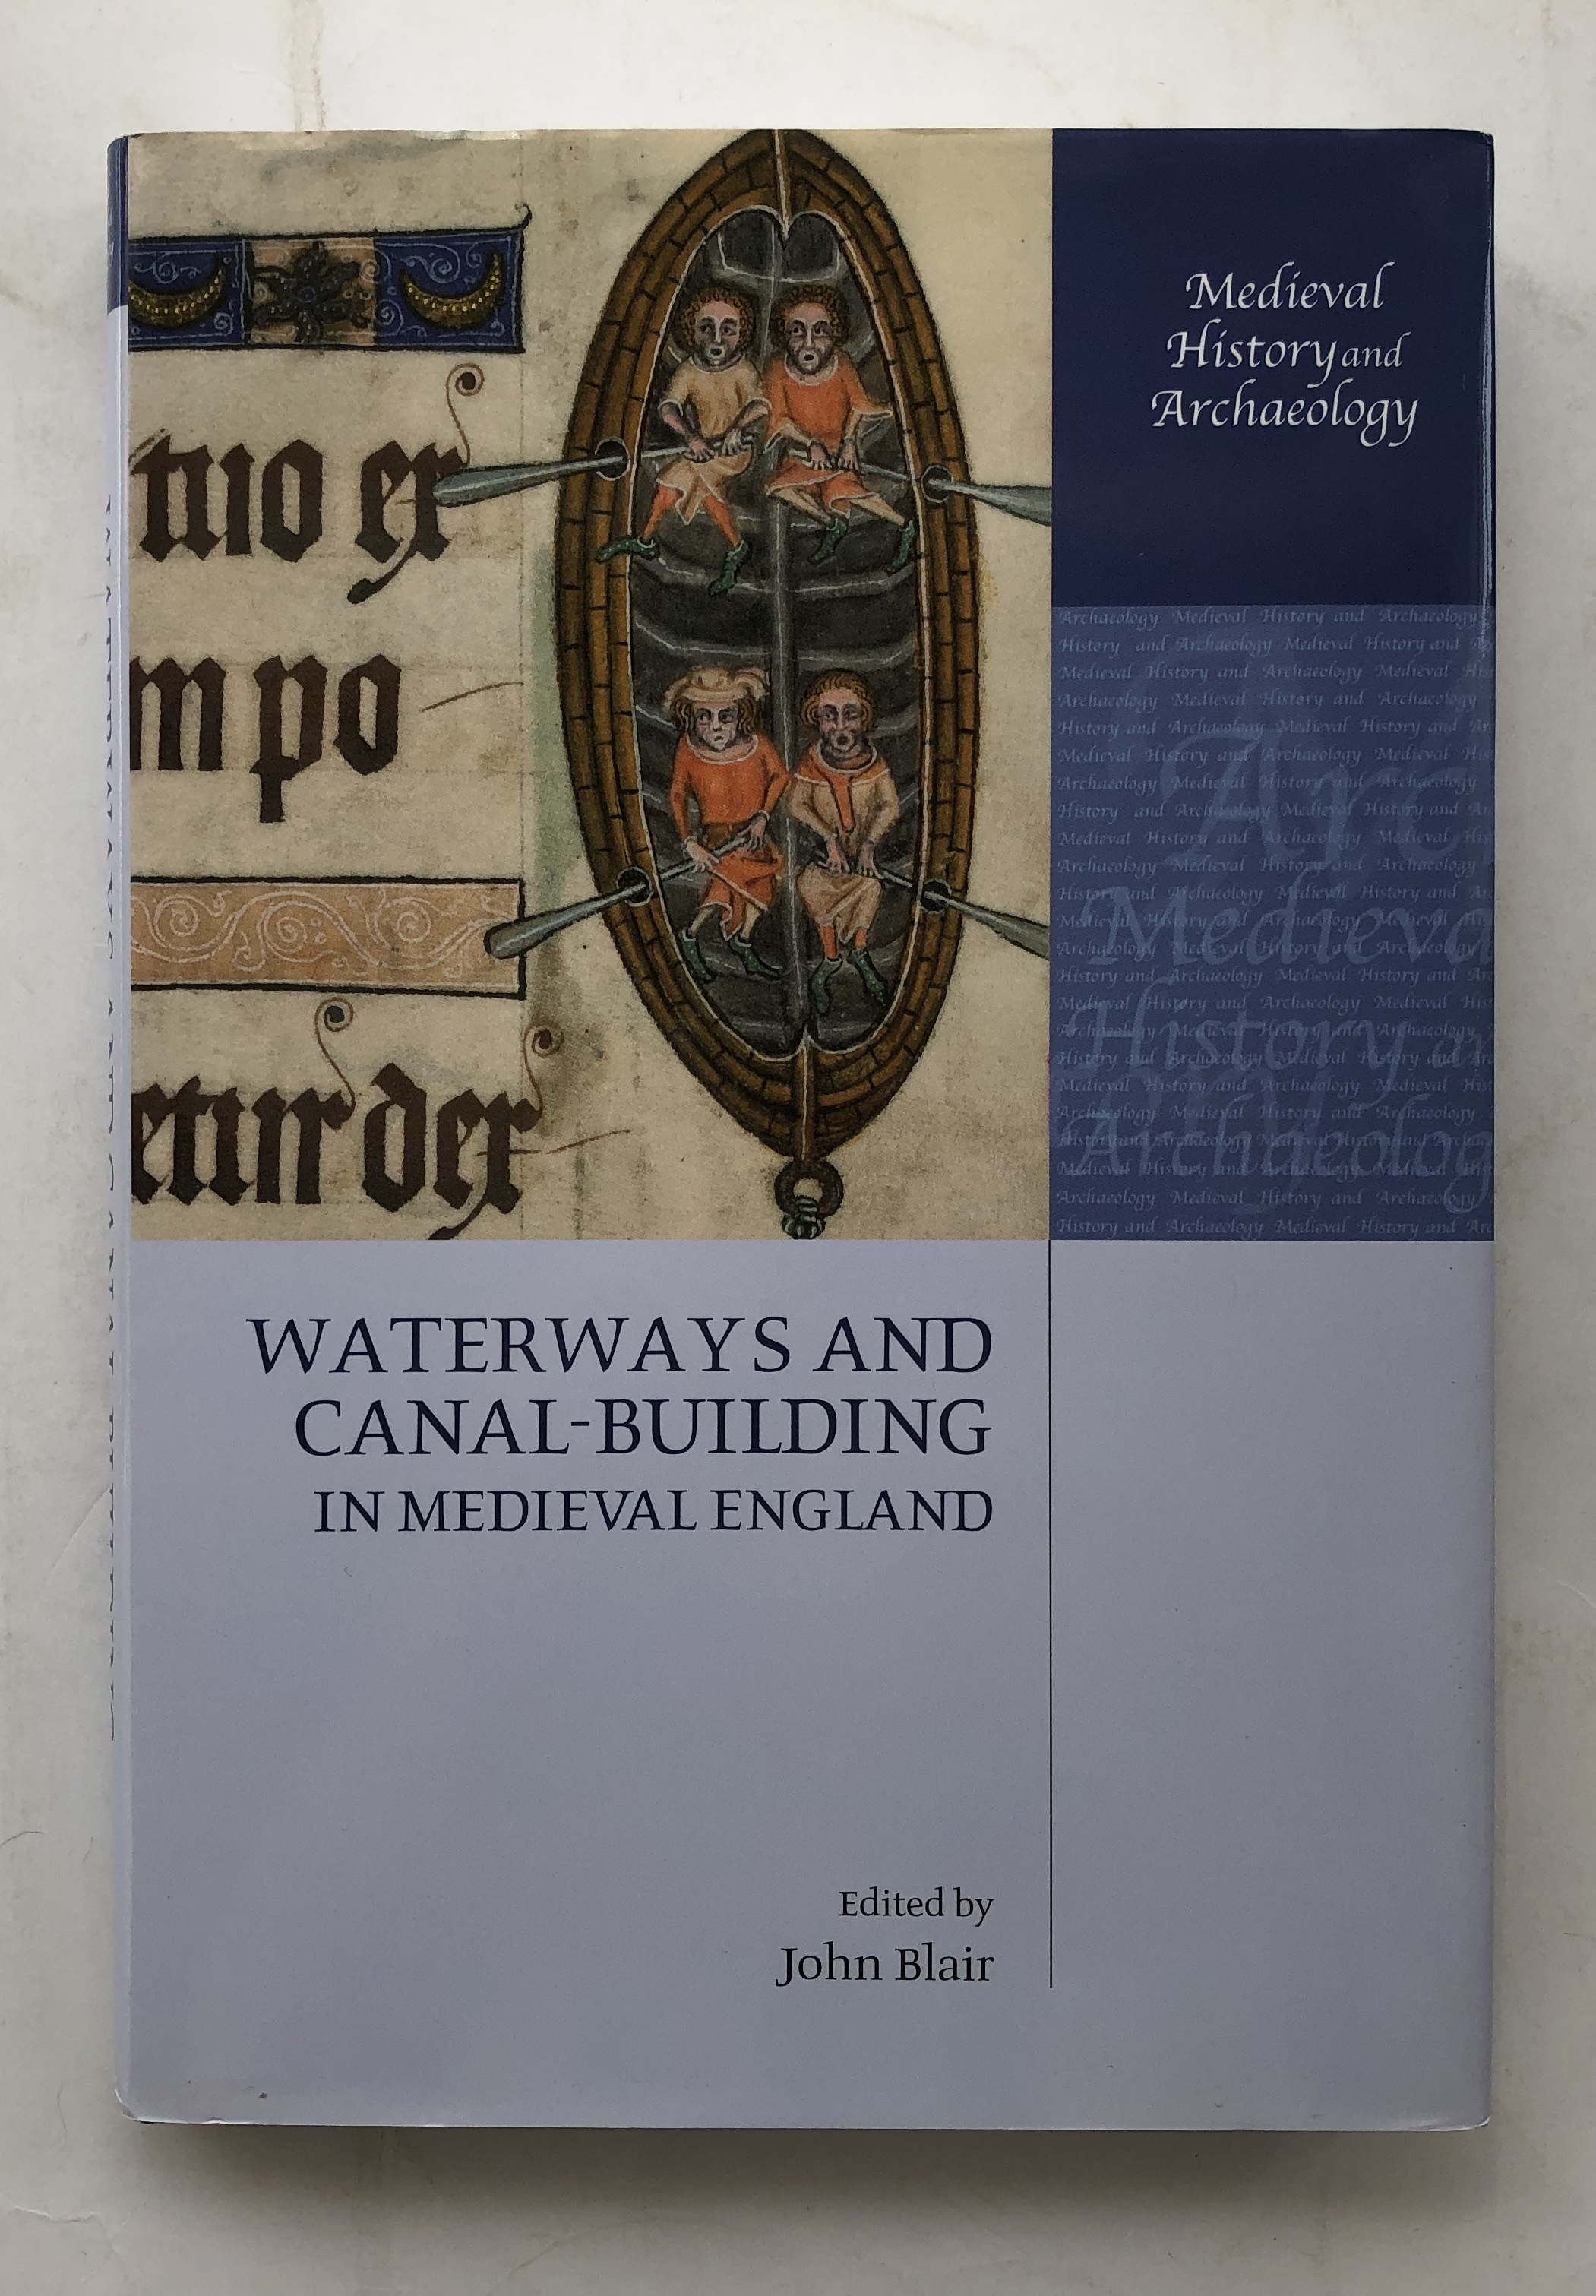 Waterways and Canal-Building in Medieval England :Medieval History and Archaeology